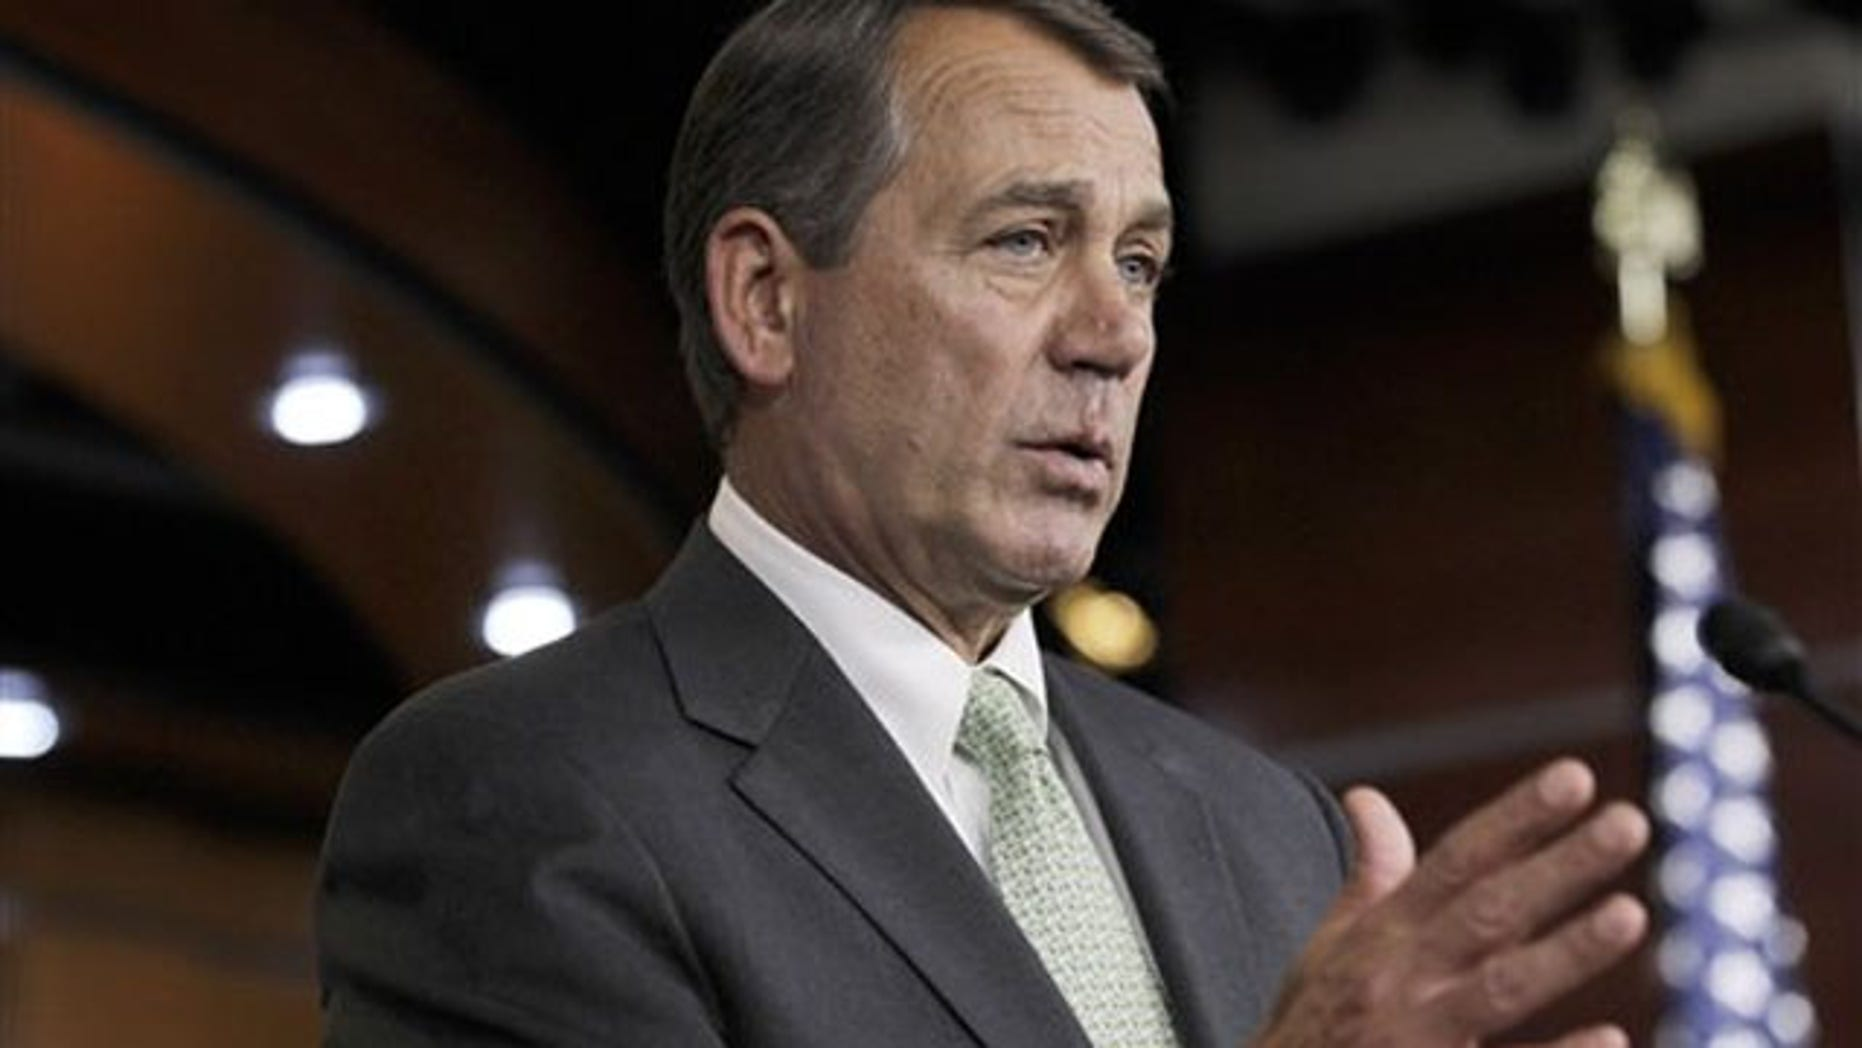 House Speaker John Boehner gestures during a news conference on Capitol Hill in Washington Jan. 26.